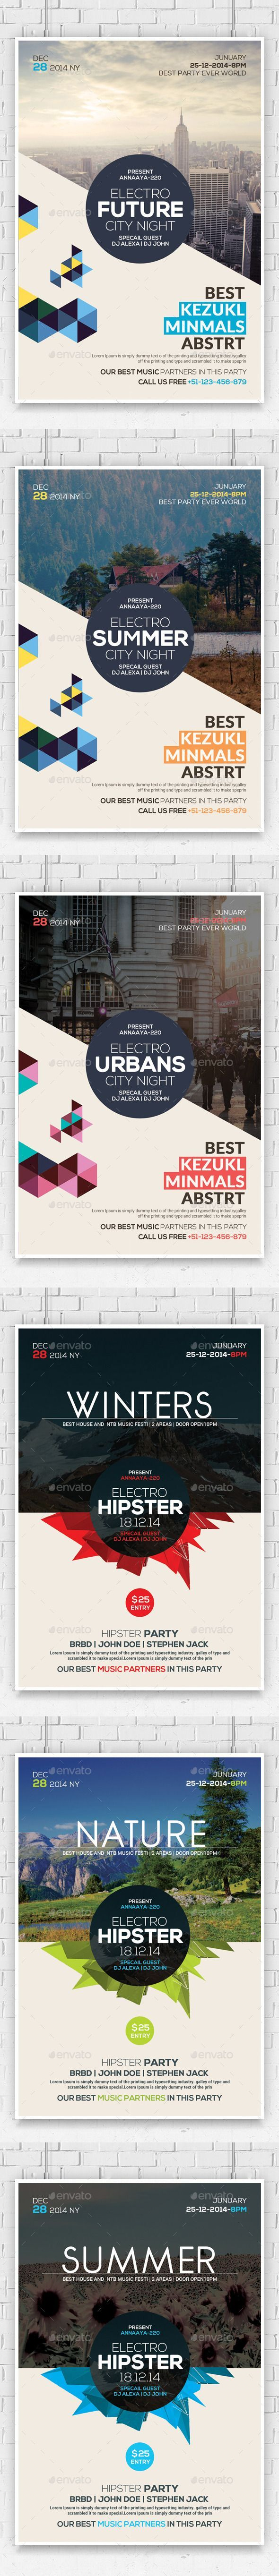 Hipster Party Flyers Bundle (CS, 4x6, abstract, album, clean, club, club flyer, design, electro, flyer, future, futuristic, geometric, geometric flyer, geometry, house, house flyer, minimal, minimal flyer, minimal party, minimalistic, modern, modern flyer, party flyer, poster, pure, style, stylish, techno, triangle, white, white flyer)…